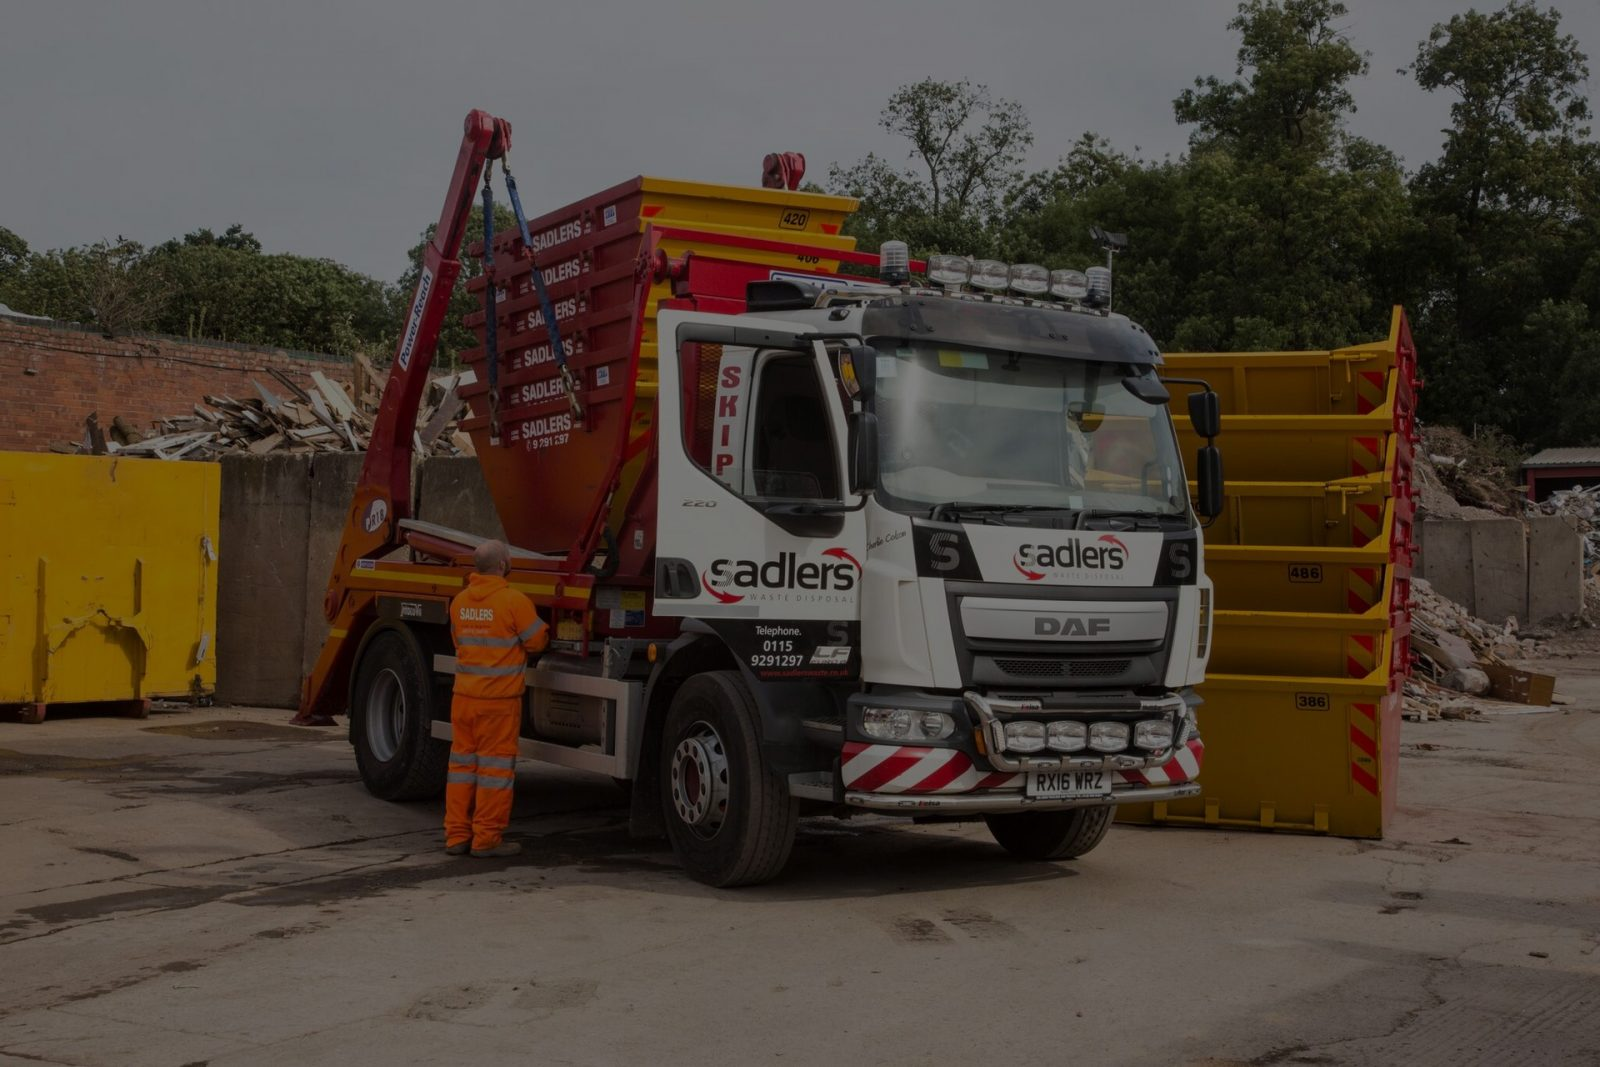 skip hire truck colson sadlers waste nottingham derby leicester